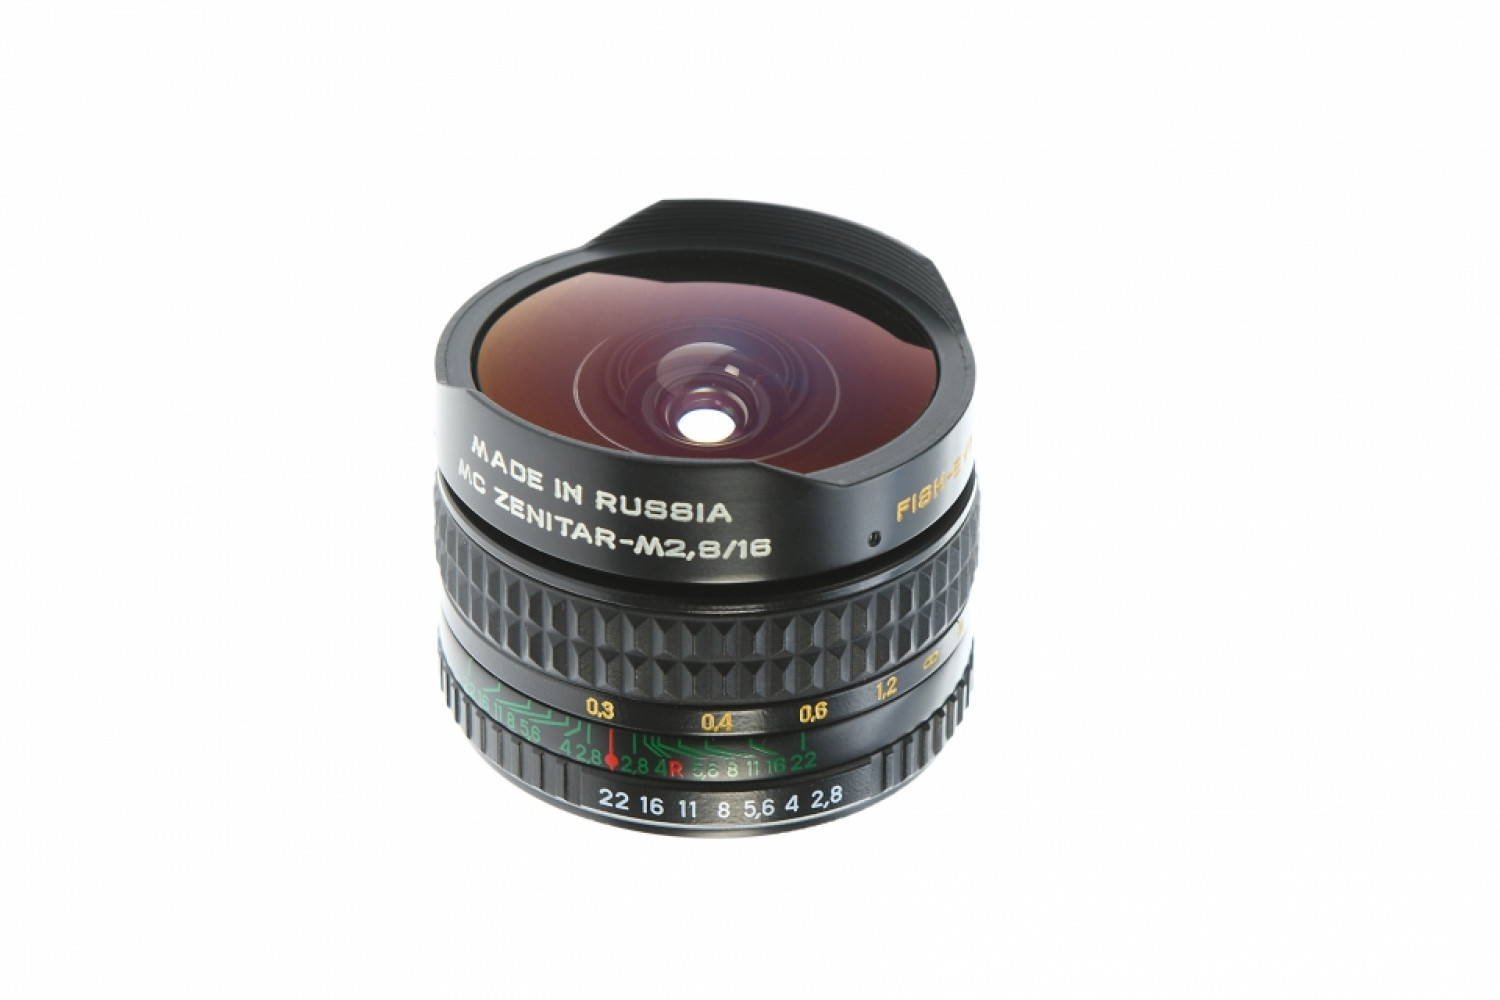 Zenitar 16mm f/2.8 MC Fisheye Lens Reviews | Canon-Reviews.com